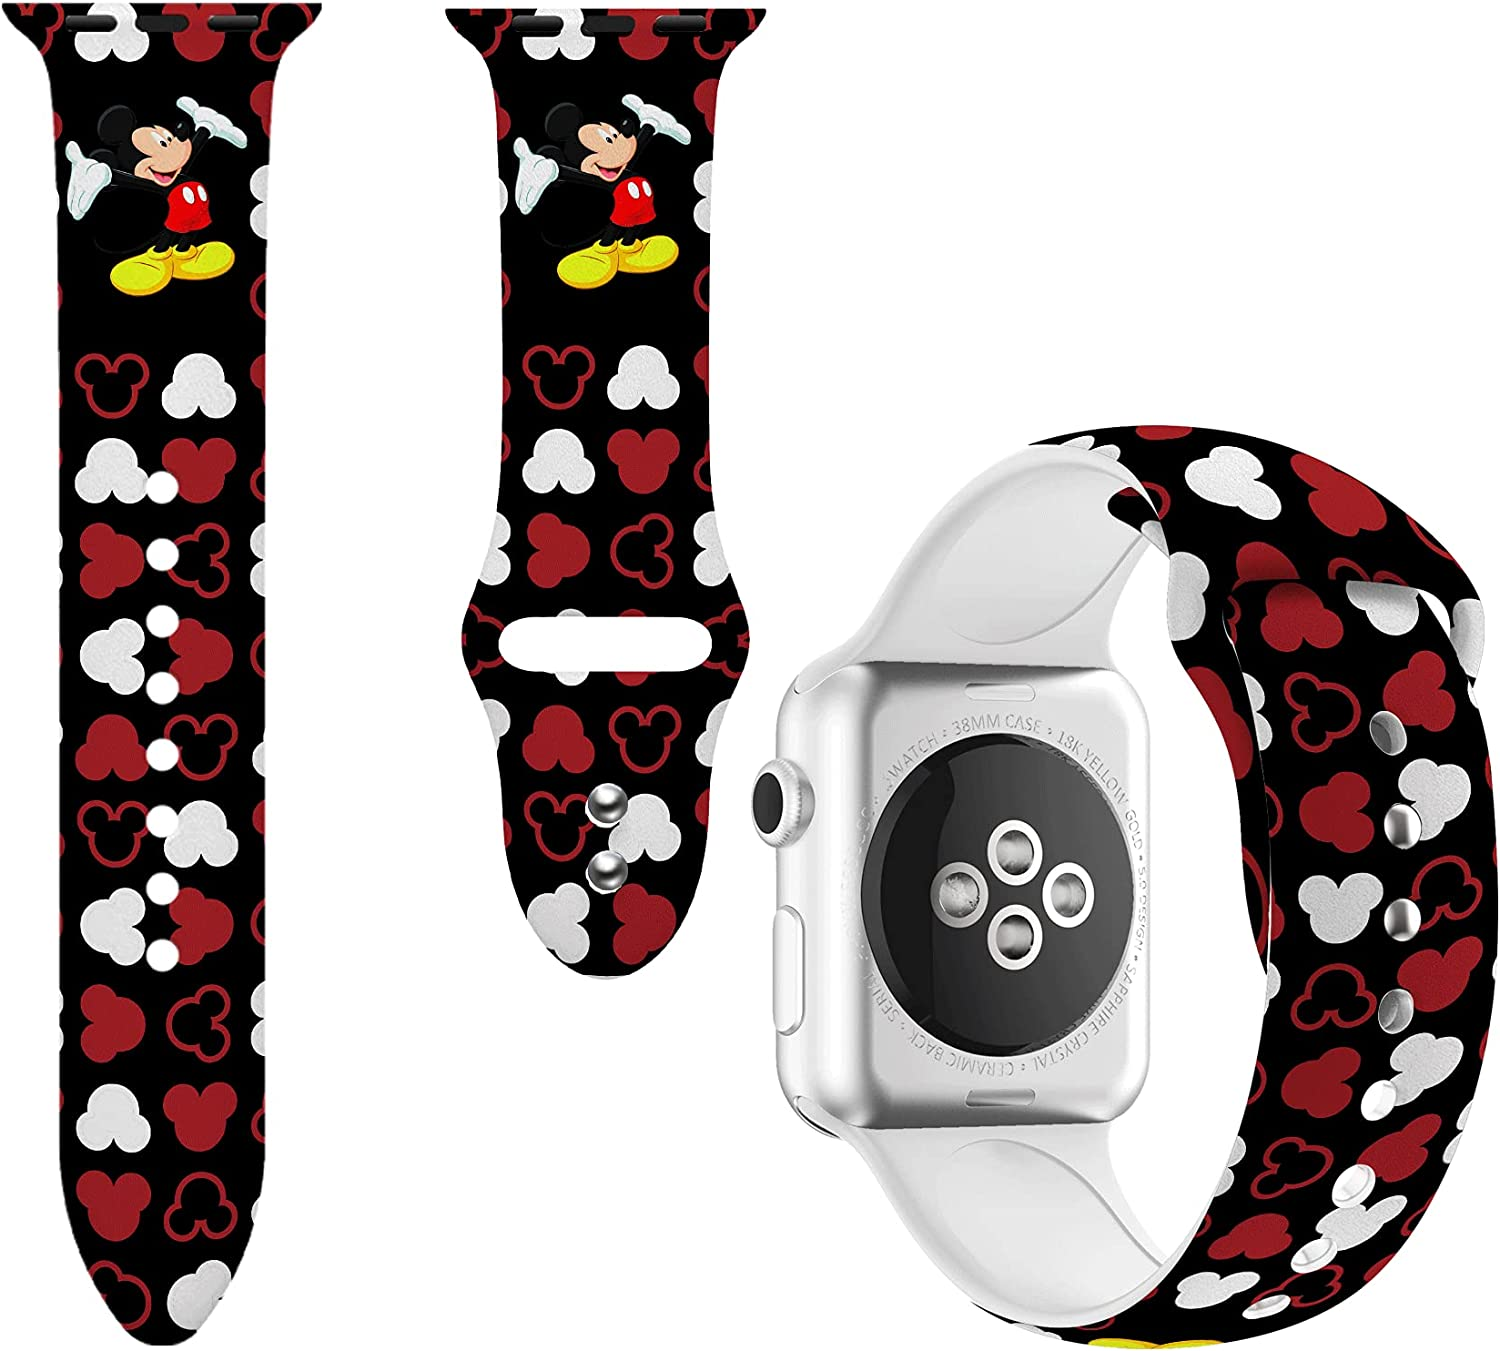 Sport Band Compatible with Apple Watch Bands 38mm 40mm 42mm 44mm for Women Men,Silicone Printed Fadeless Pattern Replacement Strap Band for iWatch Series SE 3 5 6 4 2 1